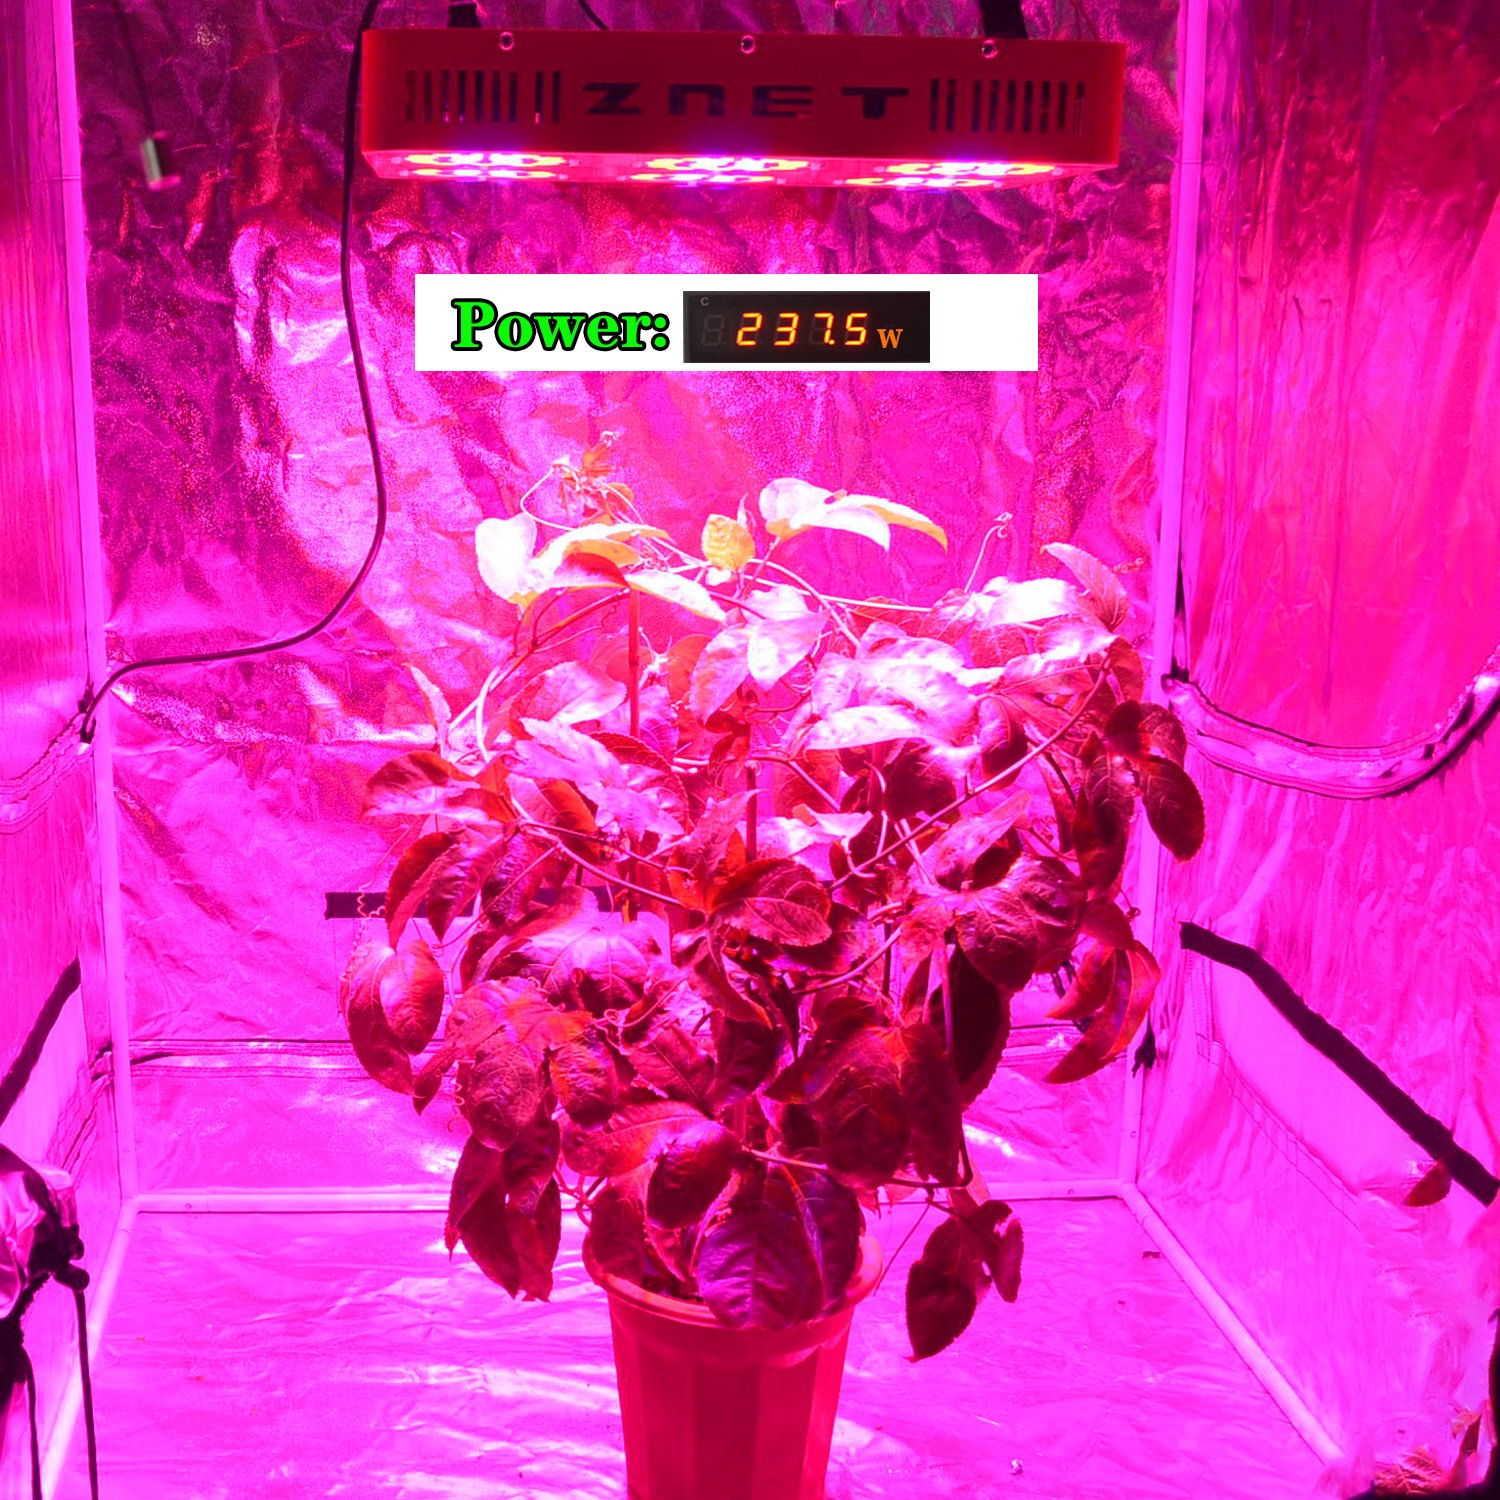 Amazon 400w hps replacement znet6 daisy chain full spectrum amazon 400w hps replacement znet6 daisy chain full spectrum led grow light for indoor growing medical plants garden outdoor parisarafo Gallery